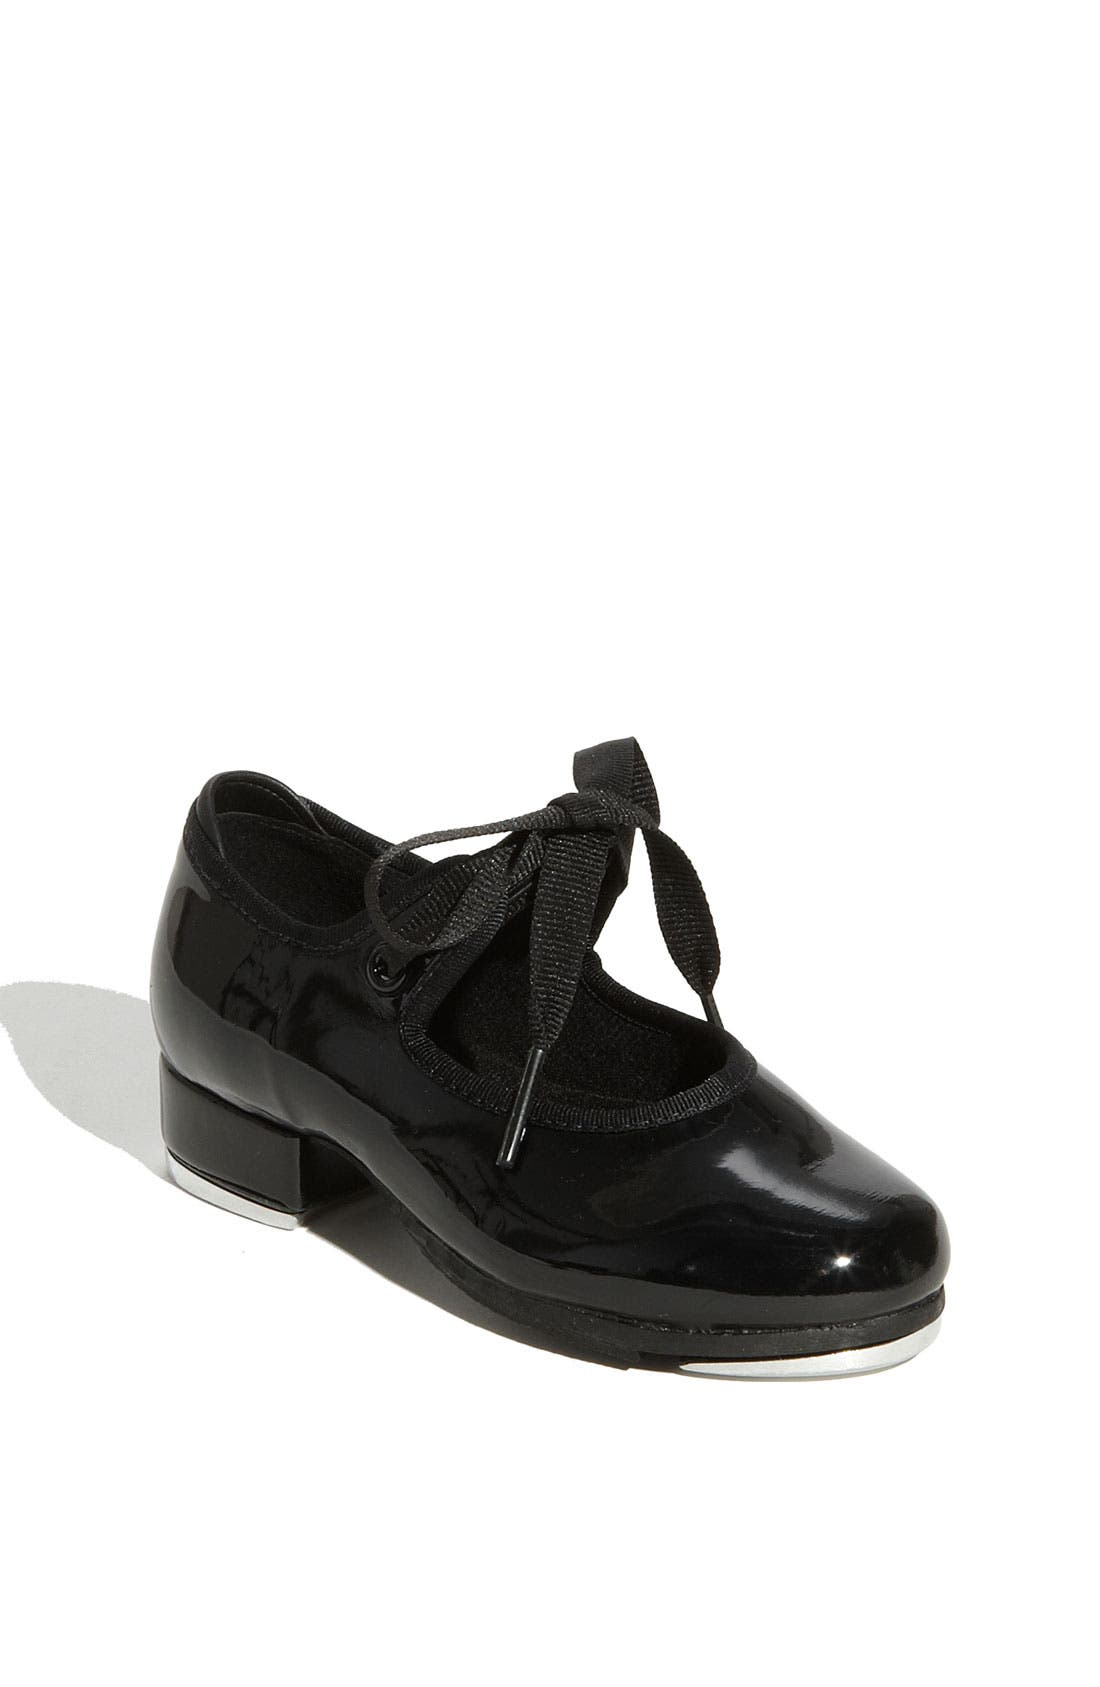 Main Image - Bloch 'Annie' Tap Shoe (Walker, Toddler & Little Kid)